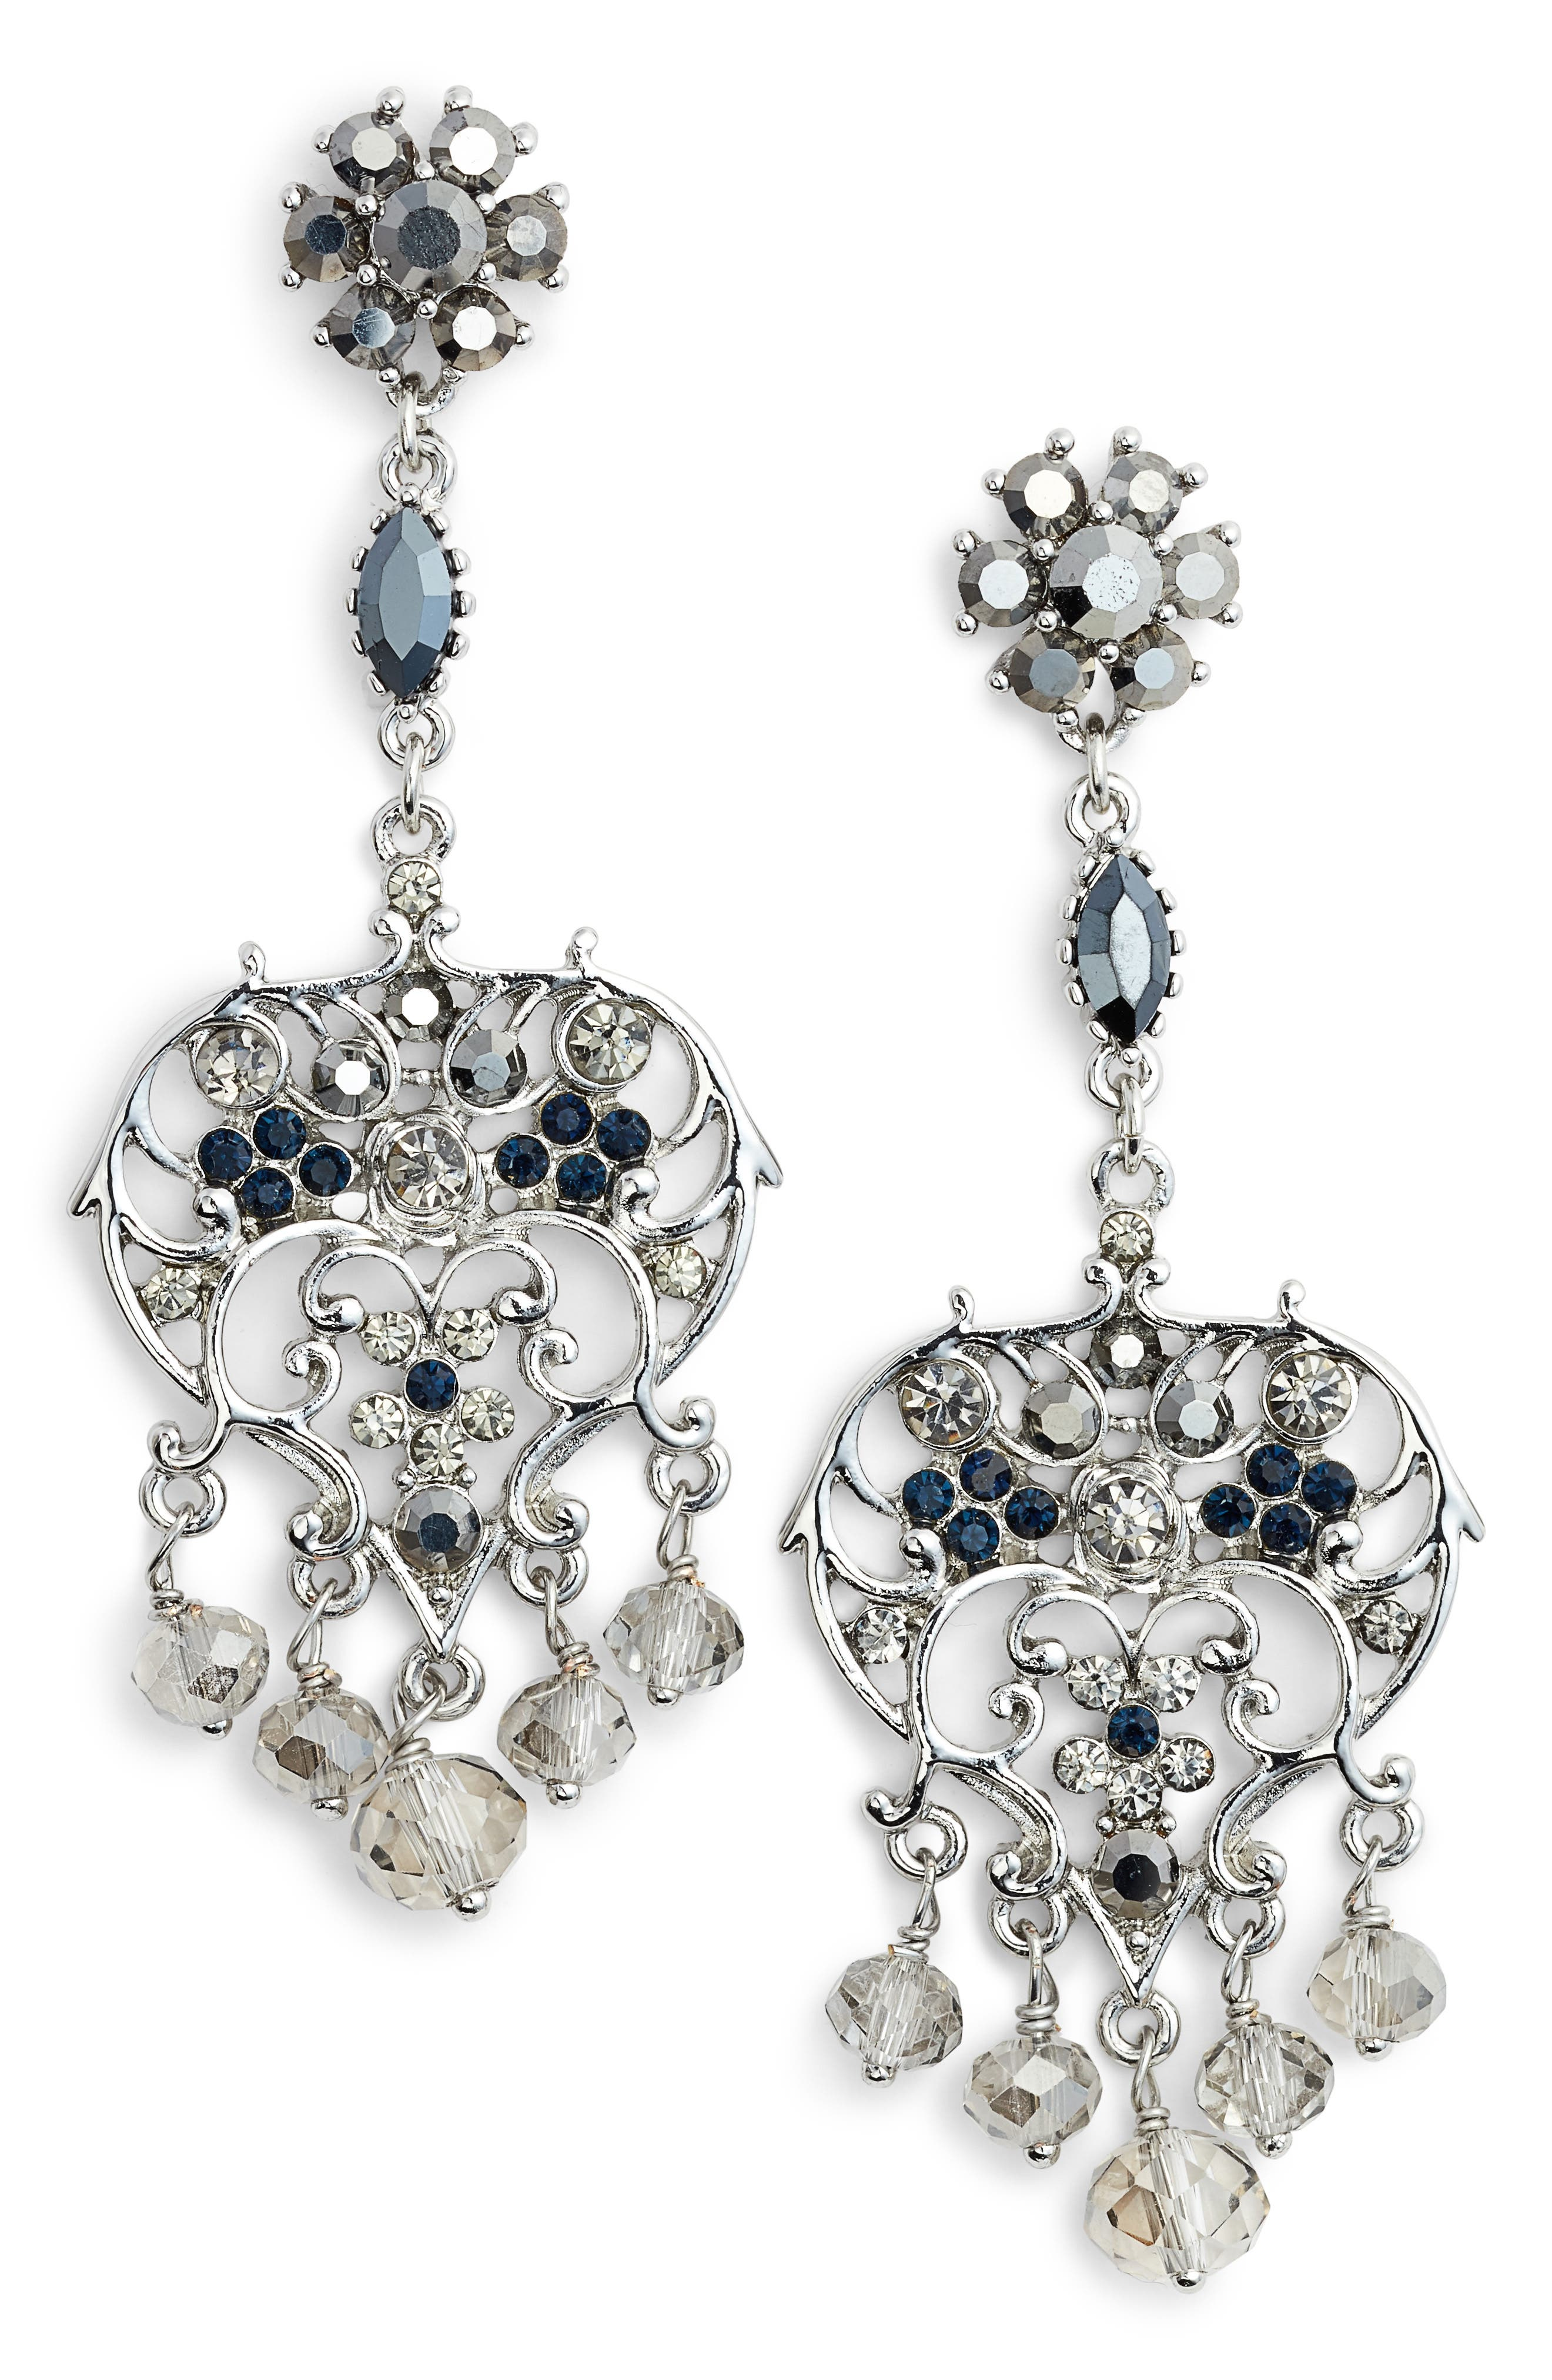 Badgley Mischka Vintage Chandelier Earrings,                             Main thumbnail 1, color,                             SILVER